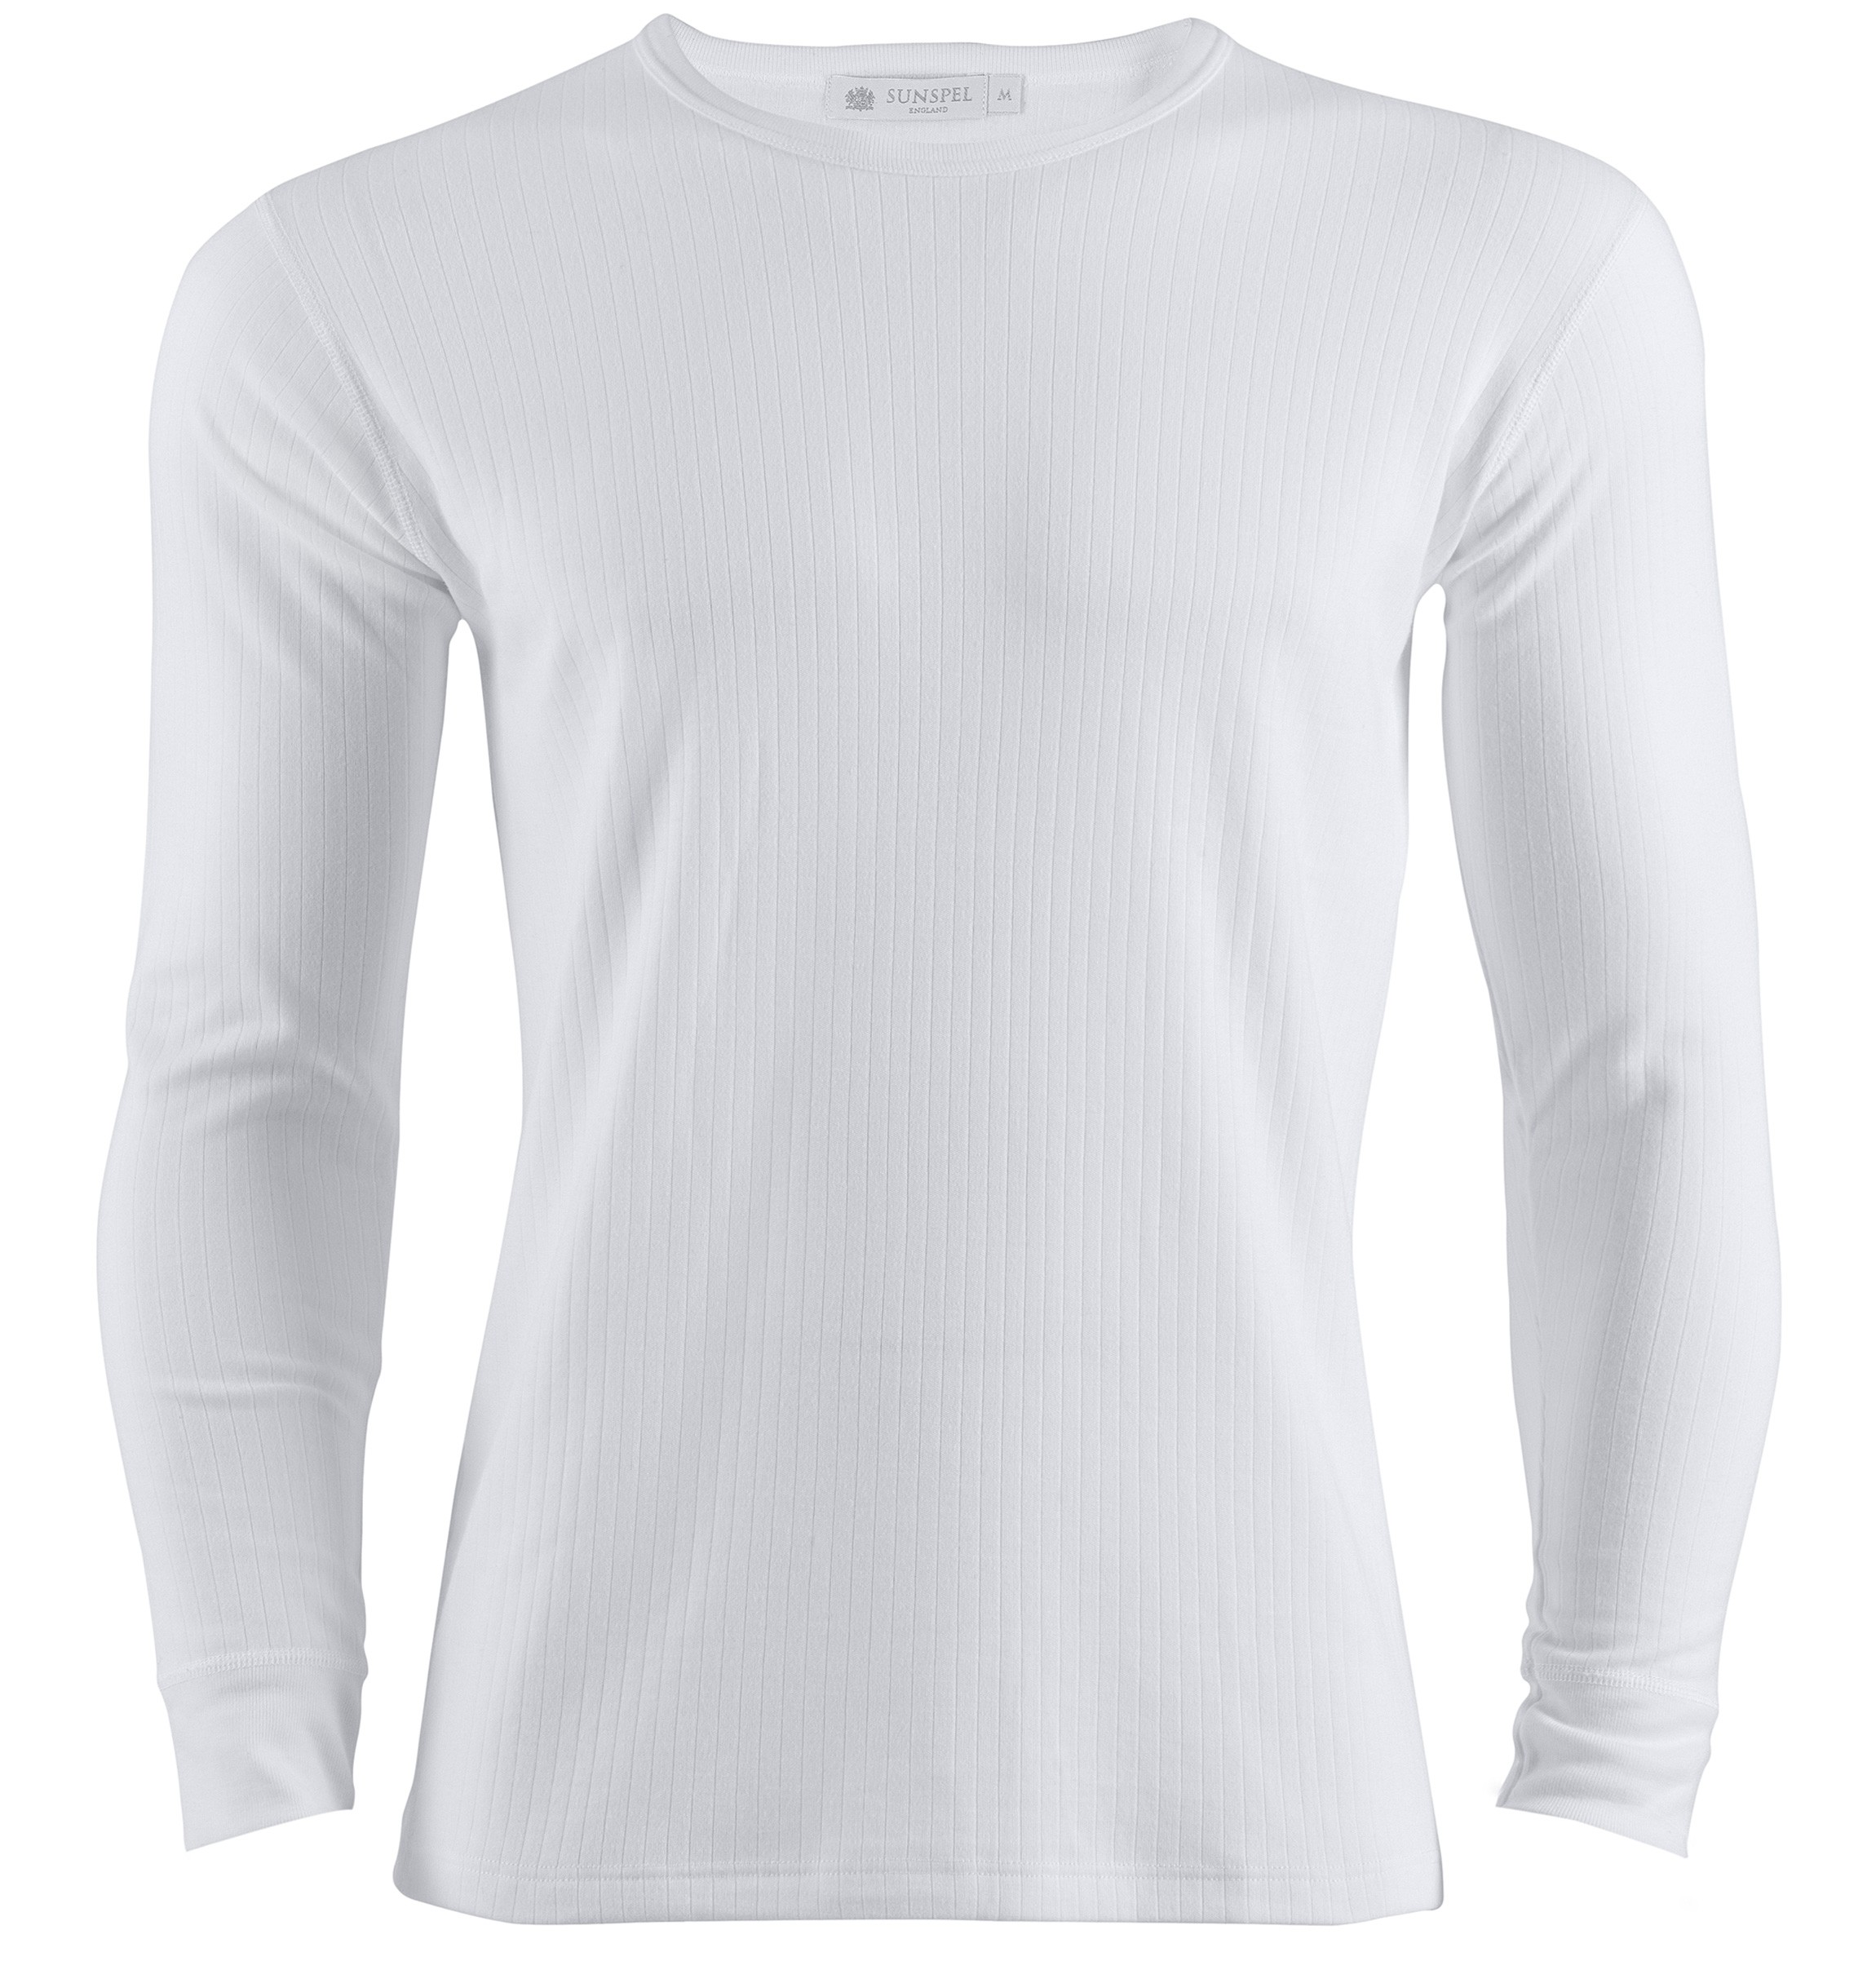 Sunspel Long Sleeve Thermal T Shirt In White For Men Lyst: thermal t shirt long sleeve